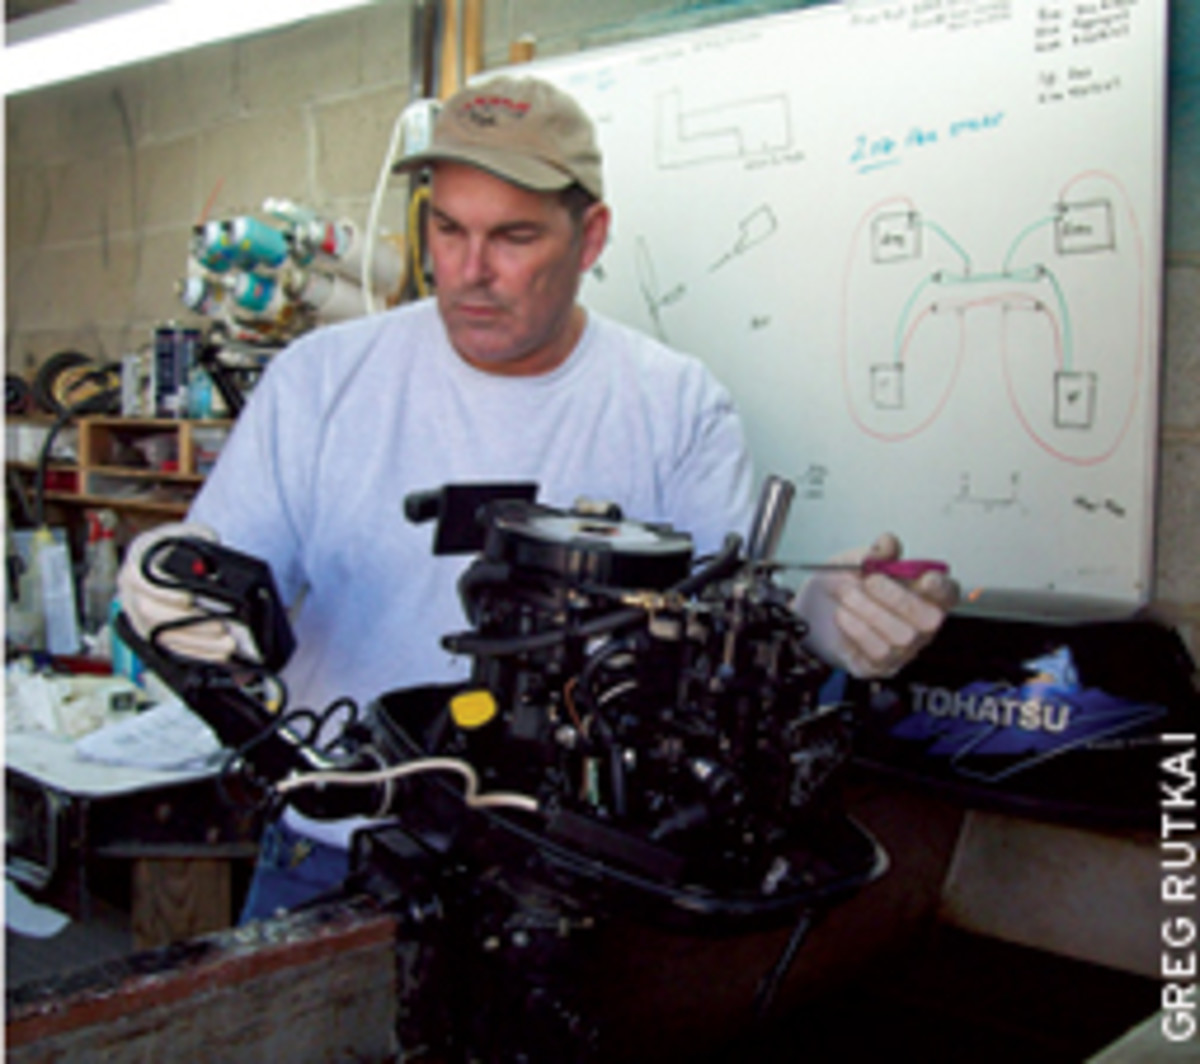 Chuck Holm gave the Bay Tripper's Tohatsu 4-stroke some TLC and showed him how to care for it.